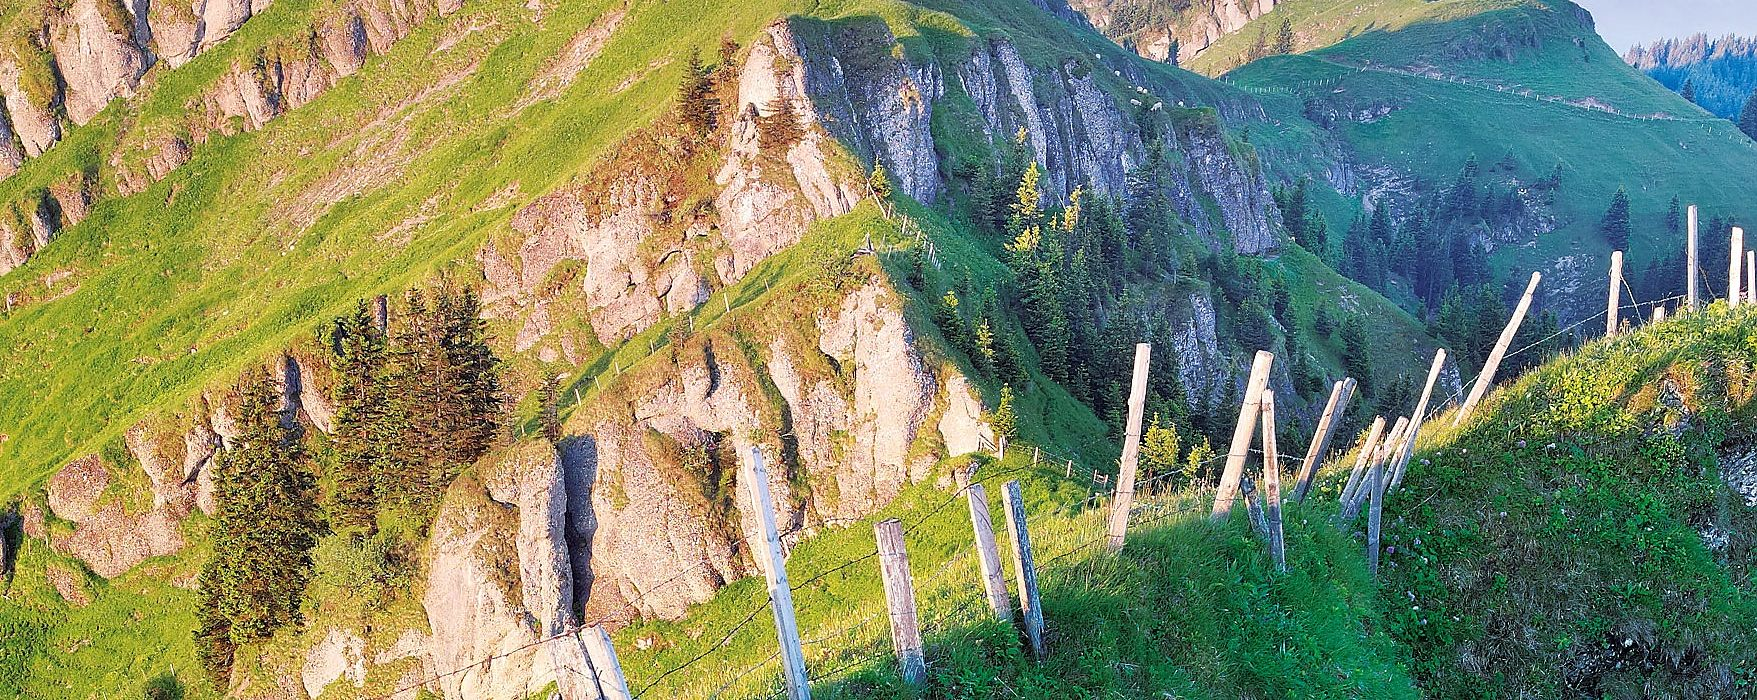 UNESCO Biosphäre Entlebuch - © Switzerland Tourism-BAFU/Gerry Nitsch